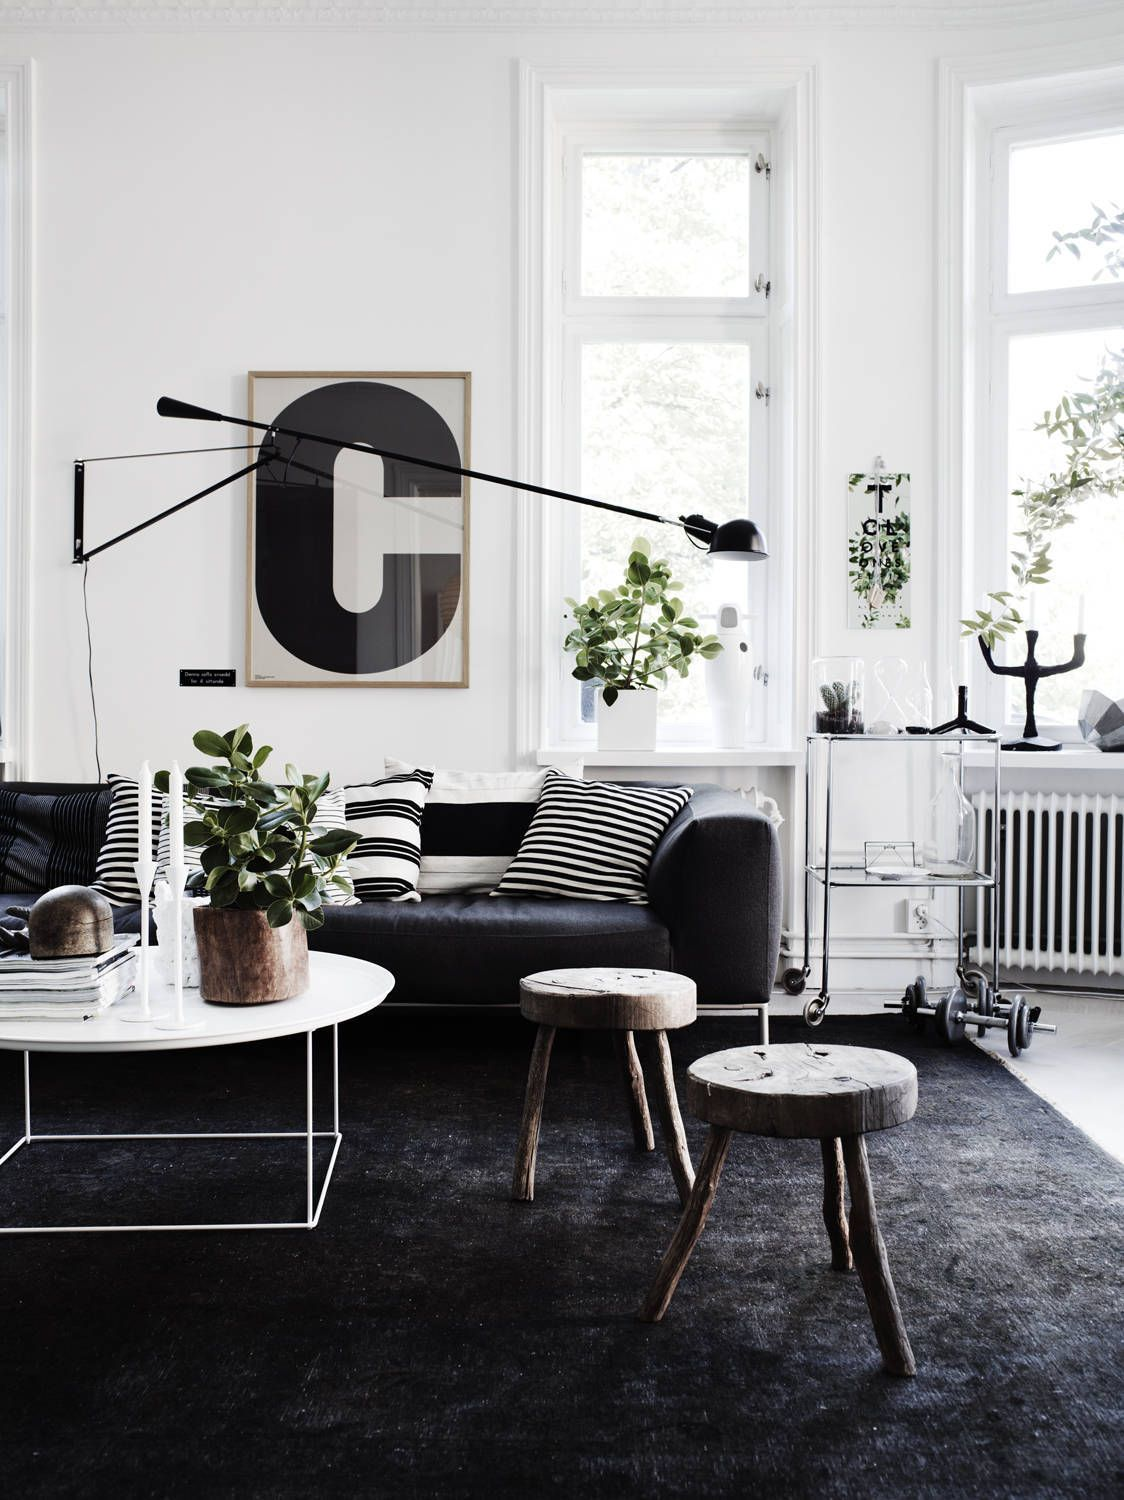 Dz Piaulin Black Carpet Living Room Living Room Scandinavian Scandinavian Design Living Room